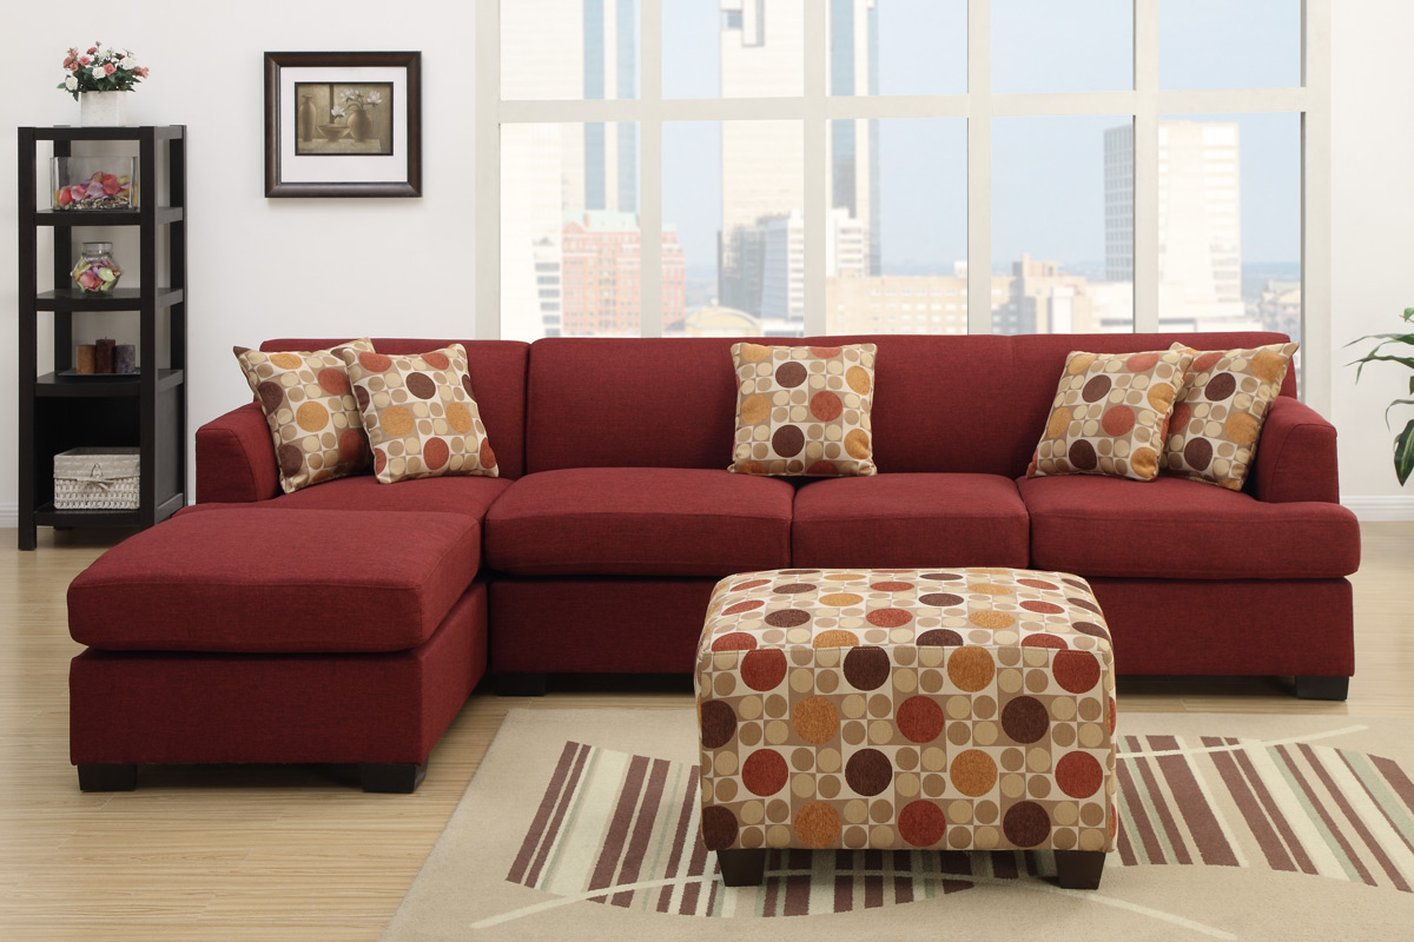 red fabric chaise lounge - Living Room Furniture Los Angeles